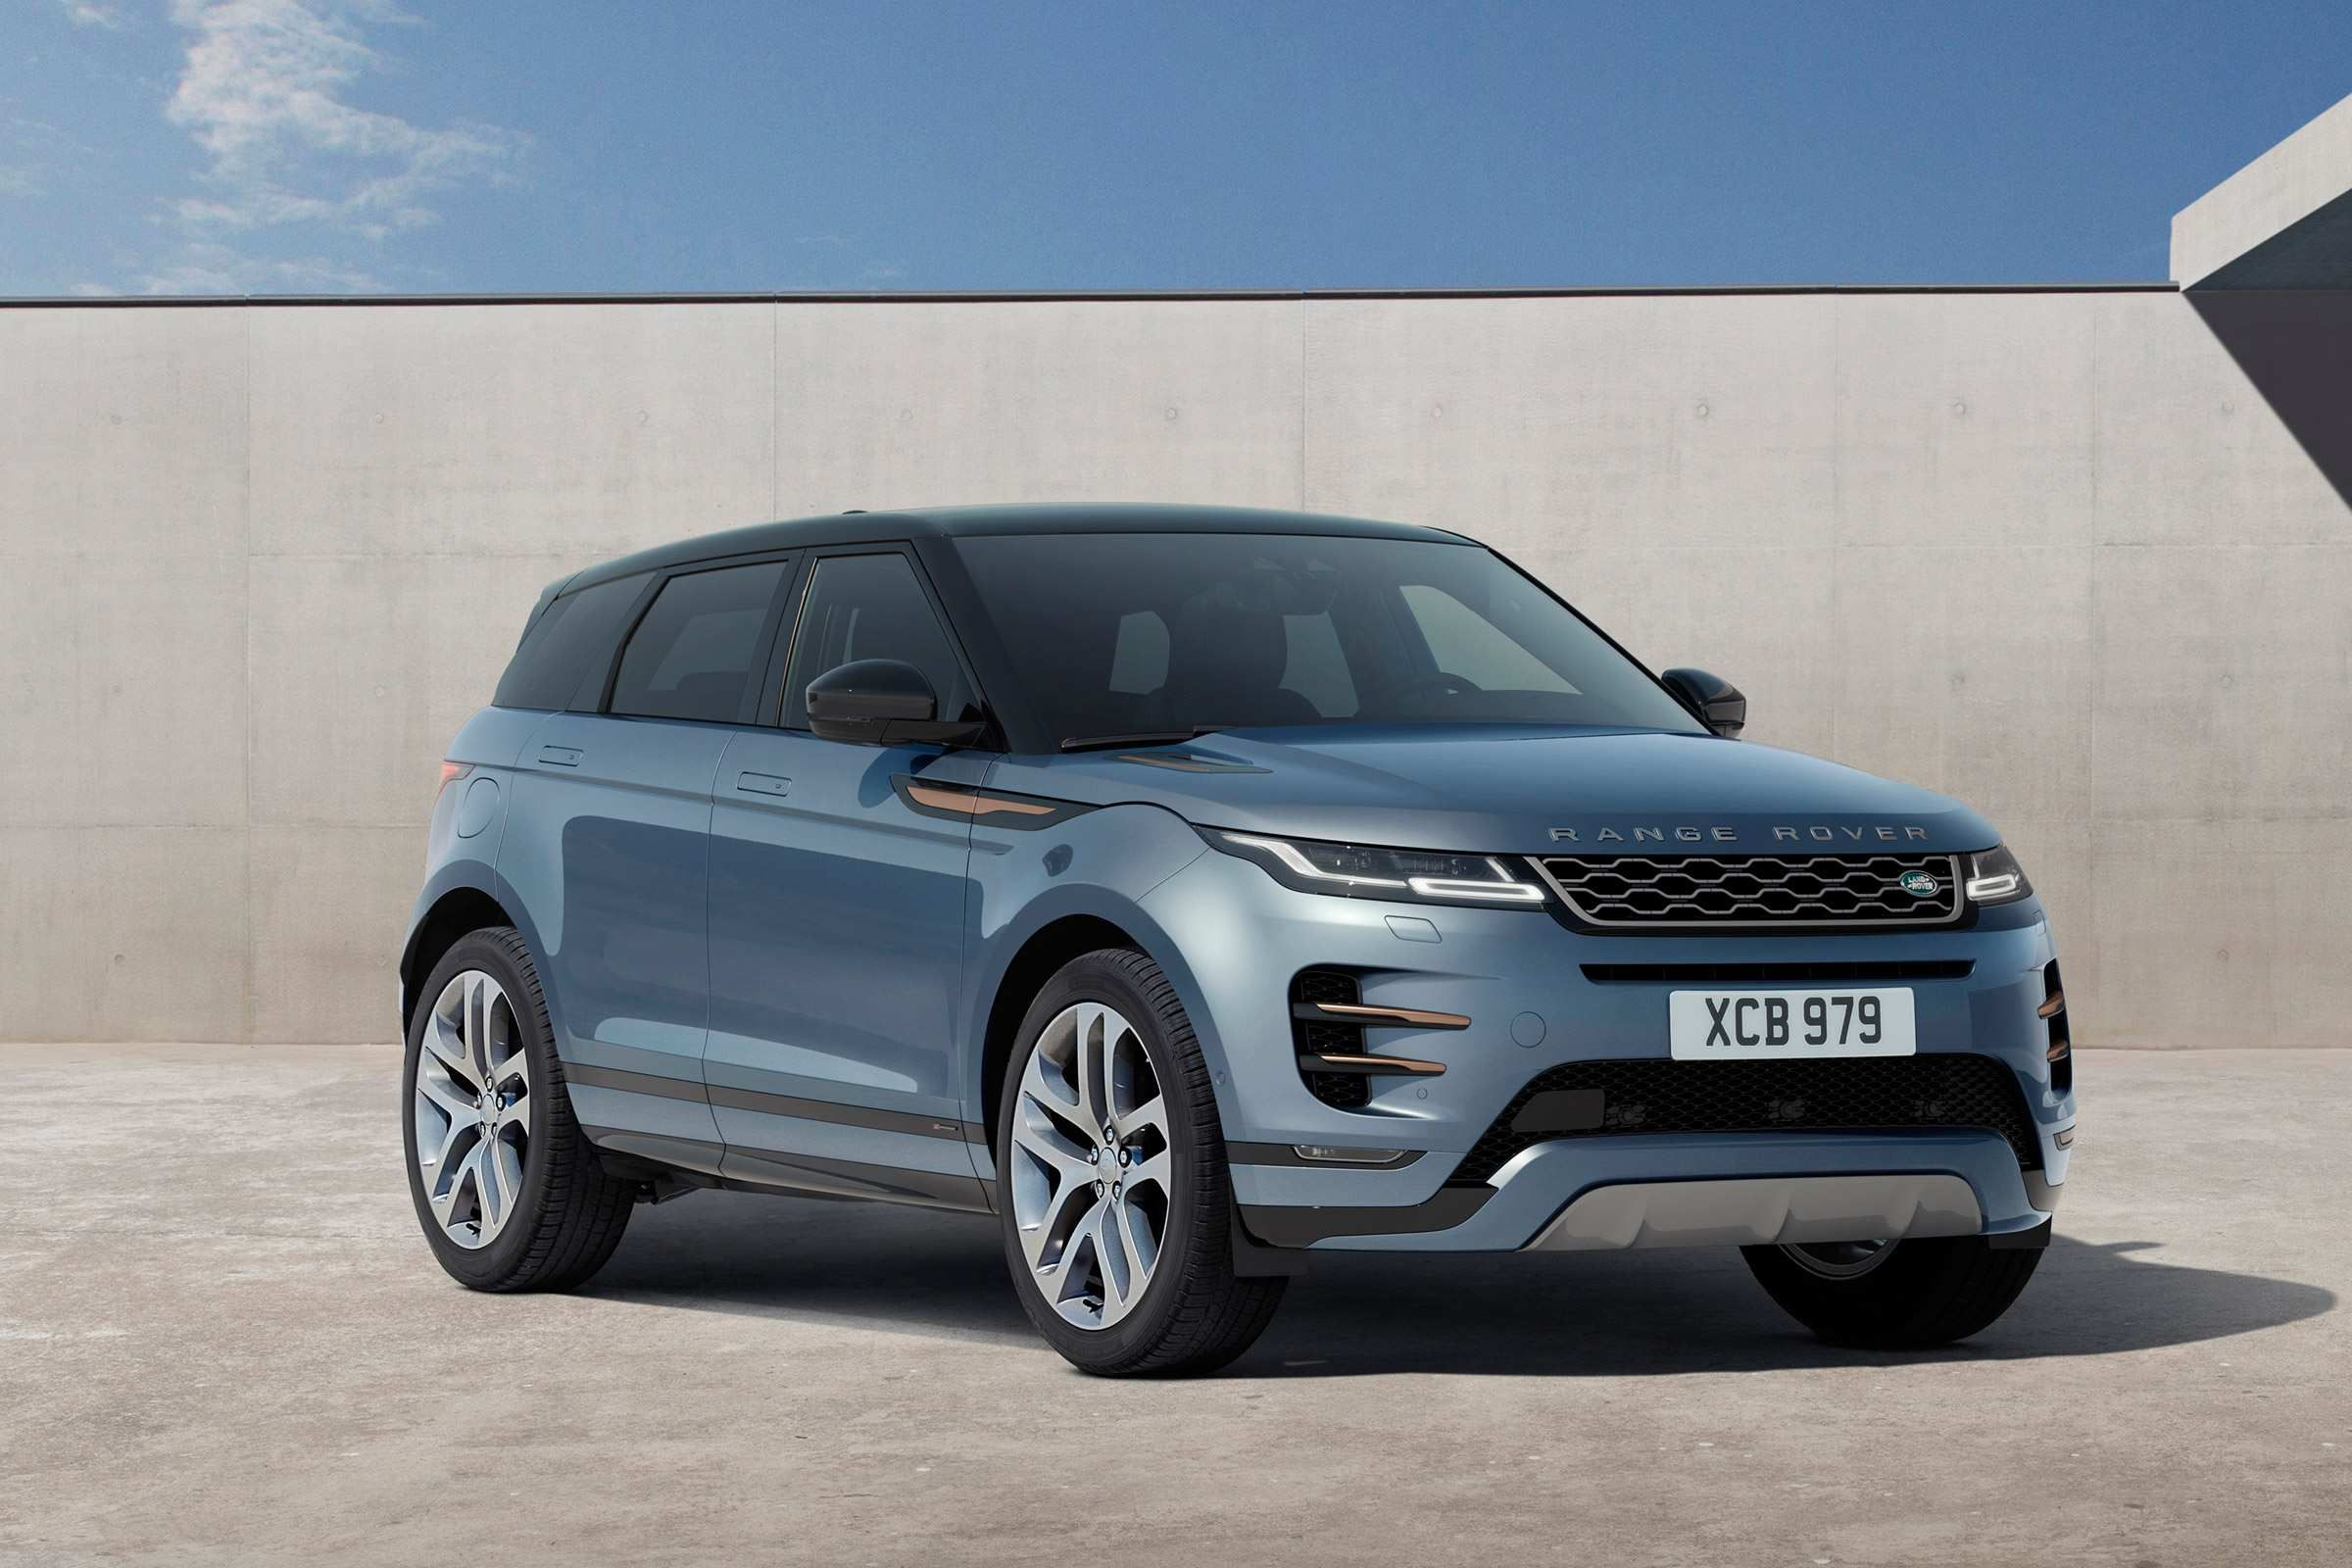 2020 Range Rover Evoque Xl Redesign and Review